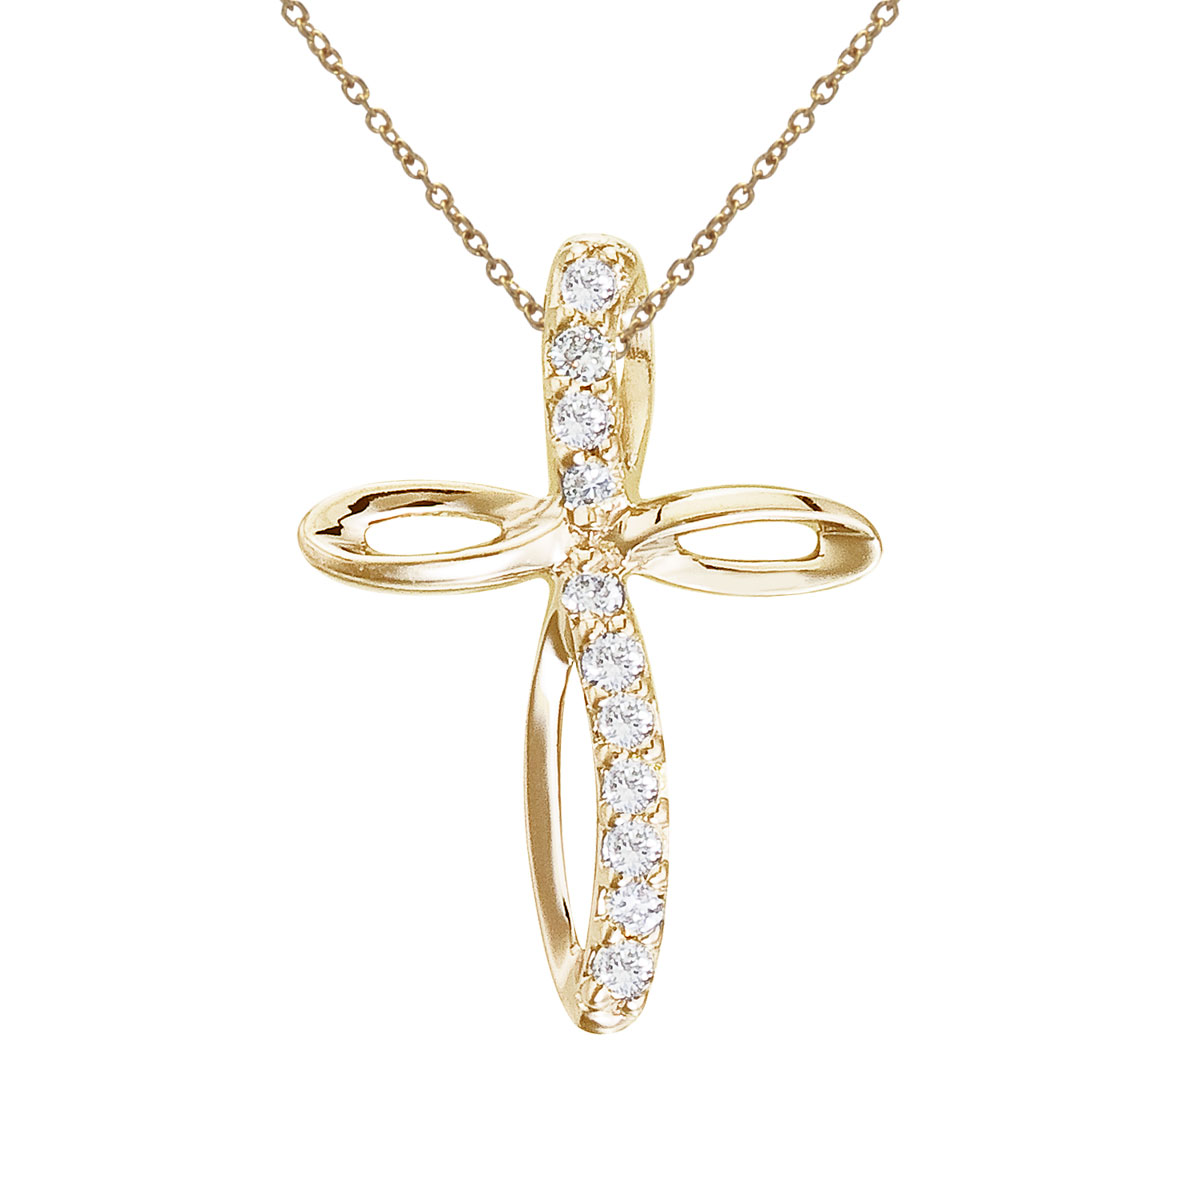 14k yellow gold cross pendant with shimmering diamonds.